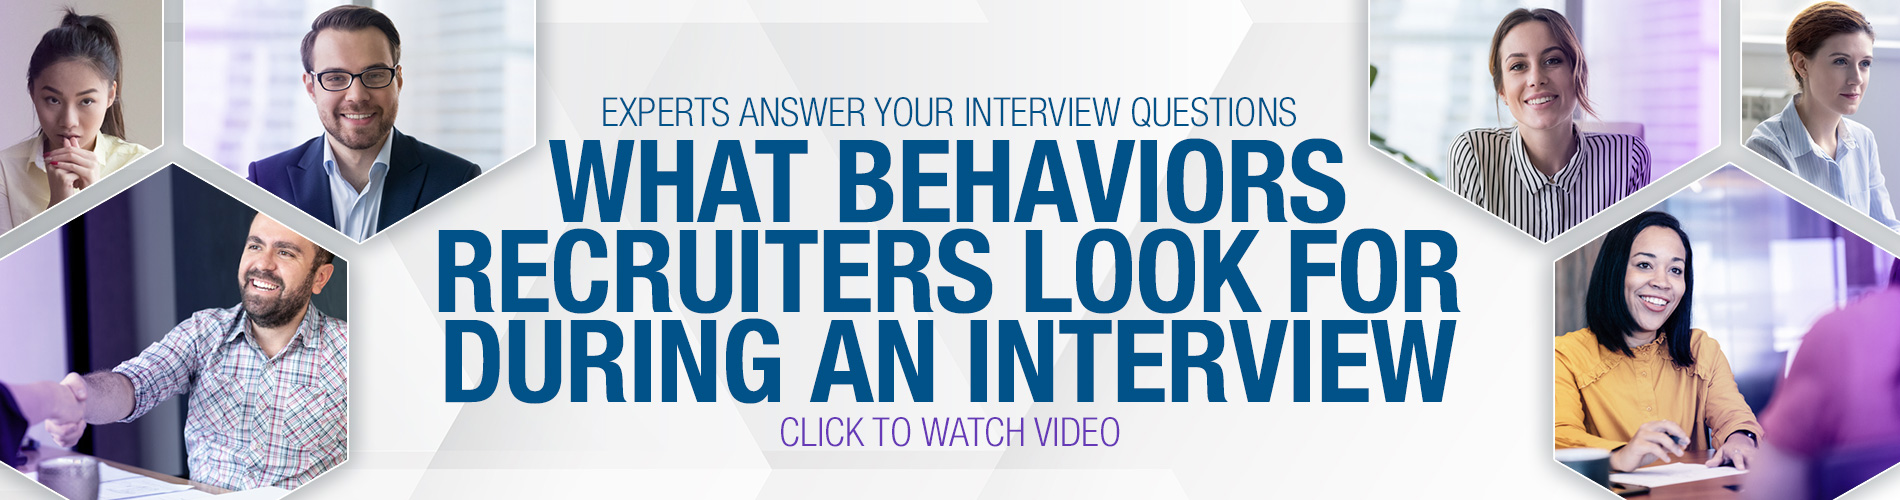 Express Jobs What Behaviors Recruiters Look For During An Interview